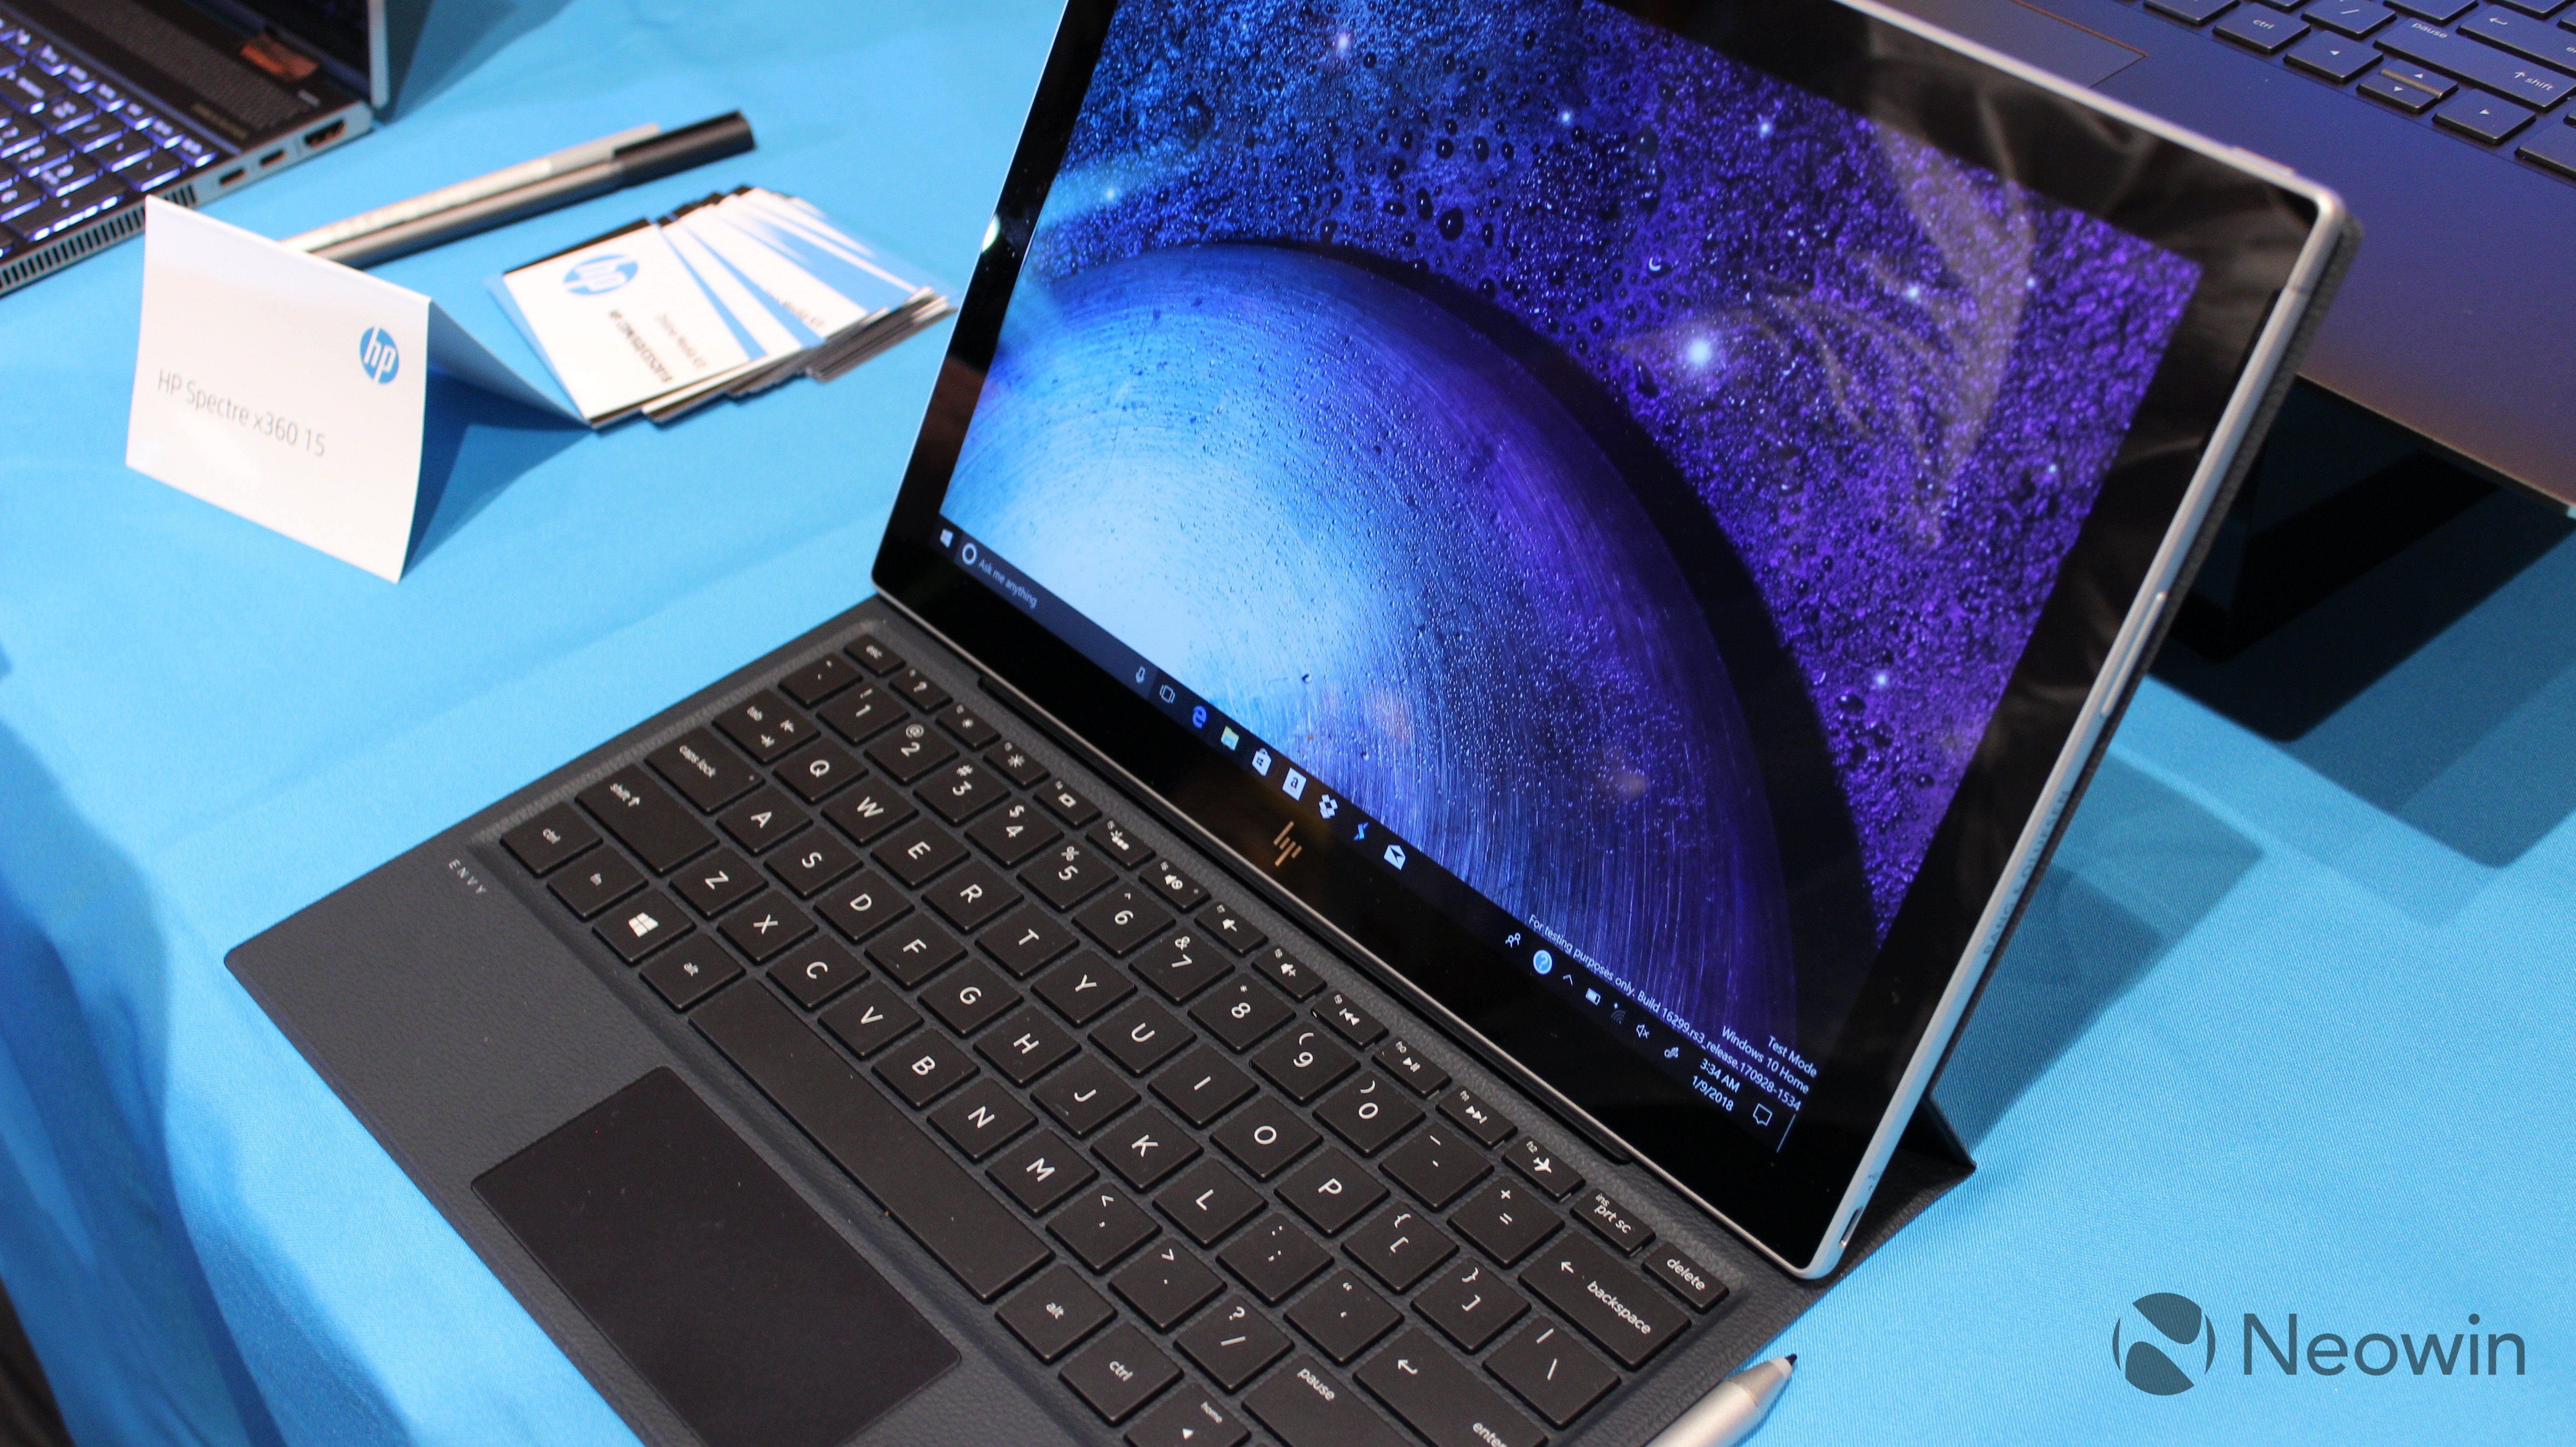 HP's Envy x2 is now available in its Intel flavor - Neowin